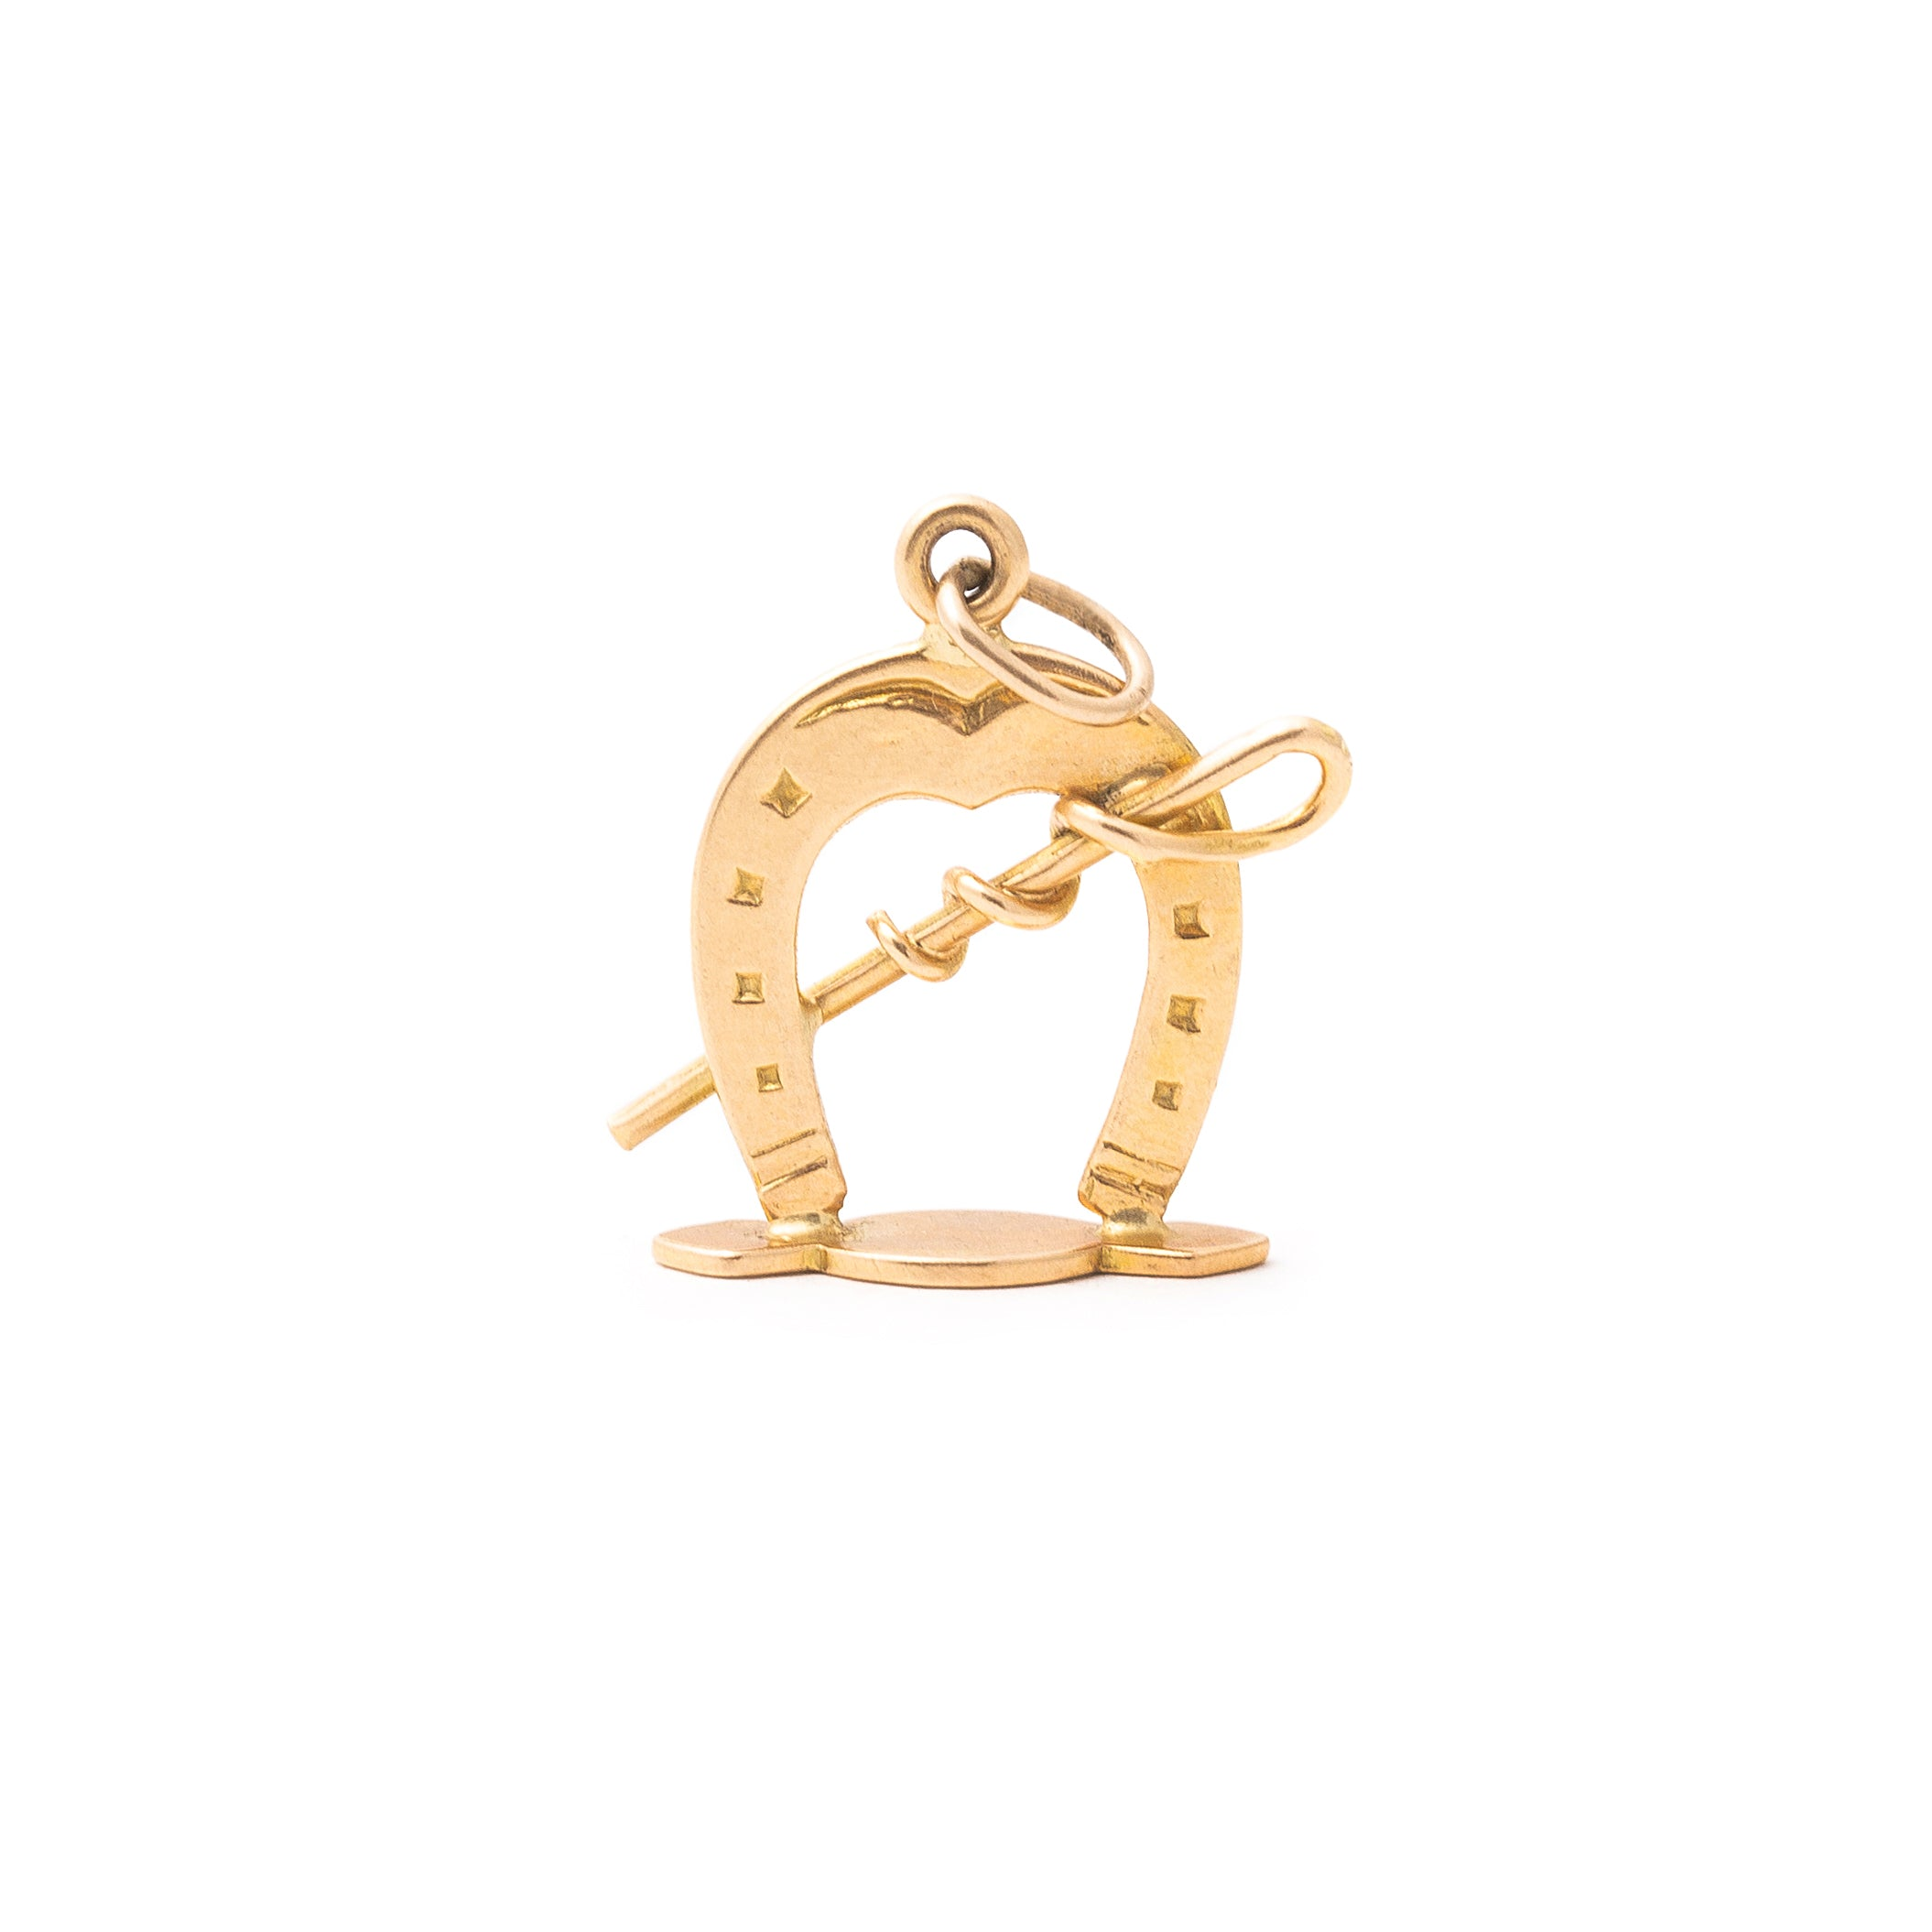 English Horseshoe And Riding Whip 18k Gold Charm